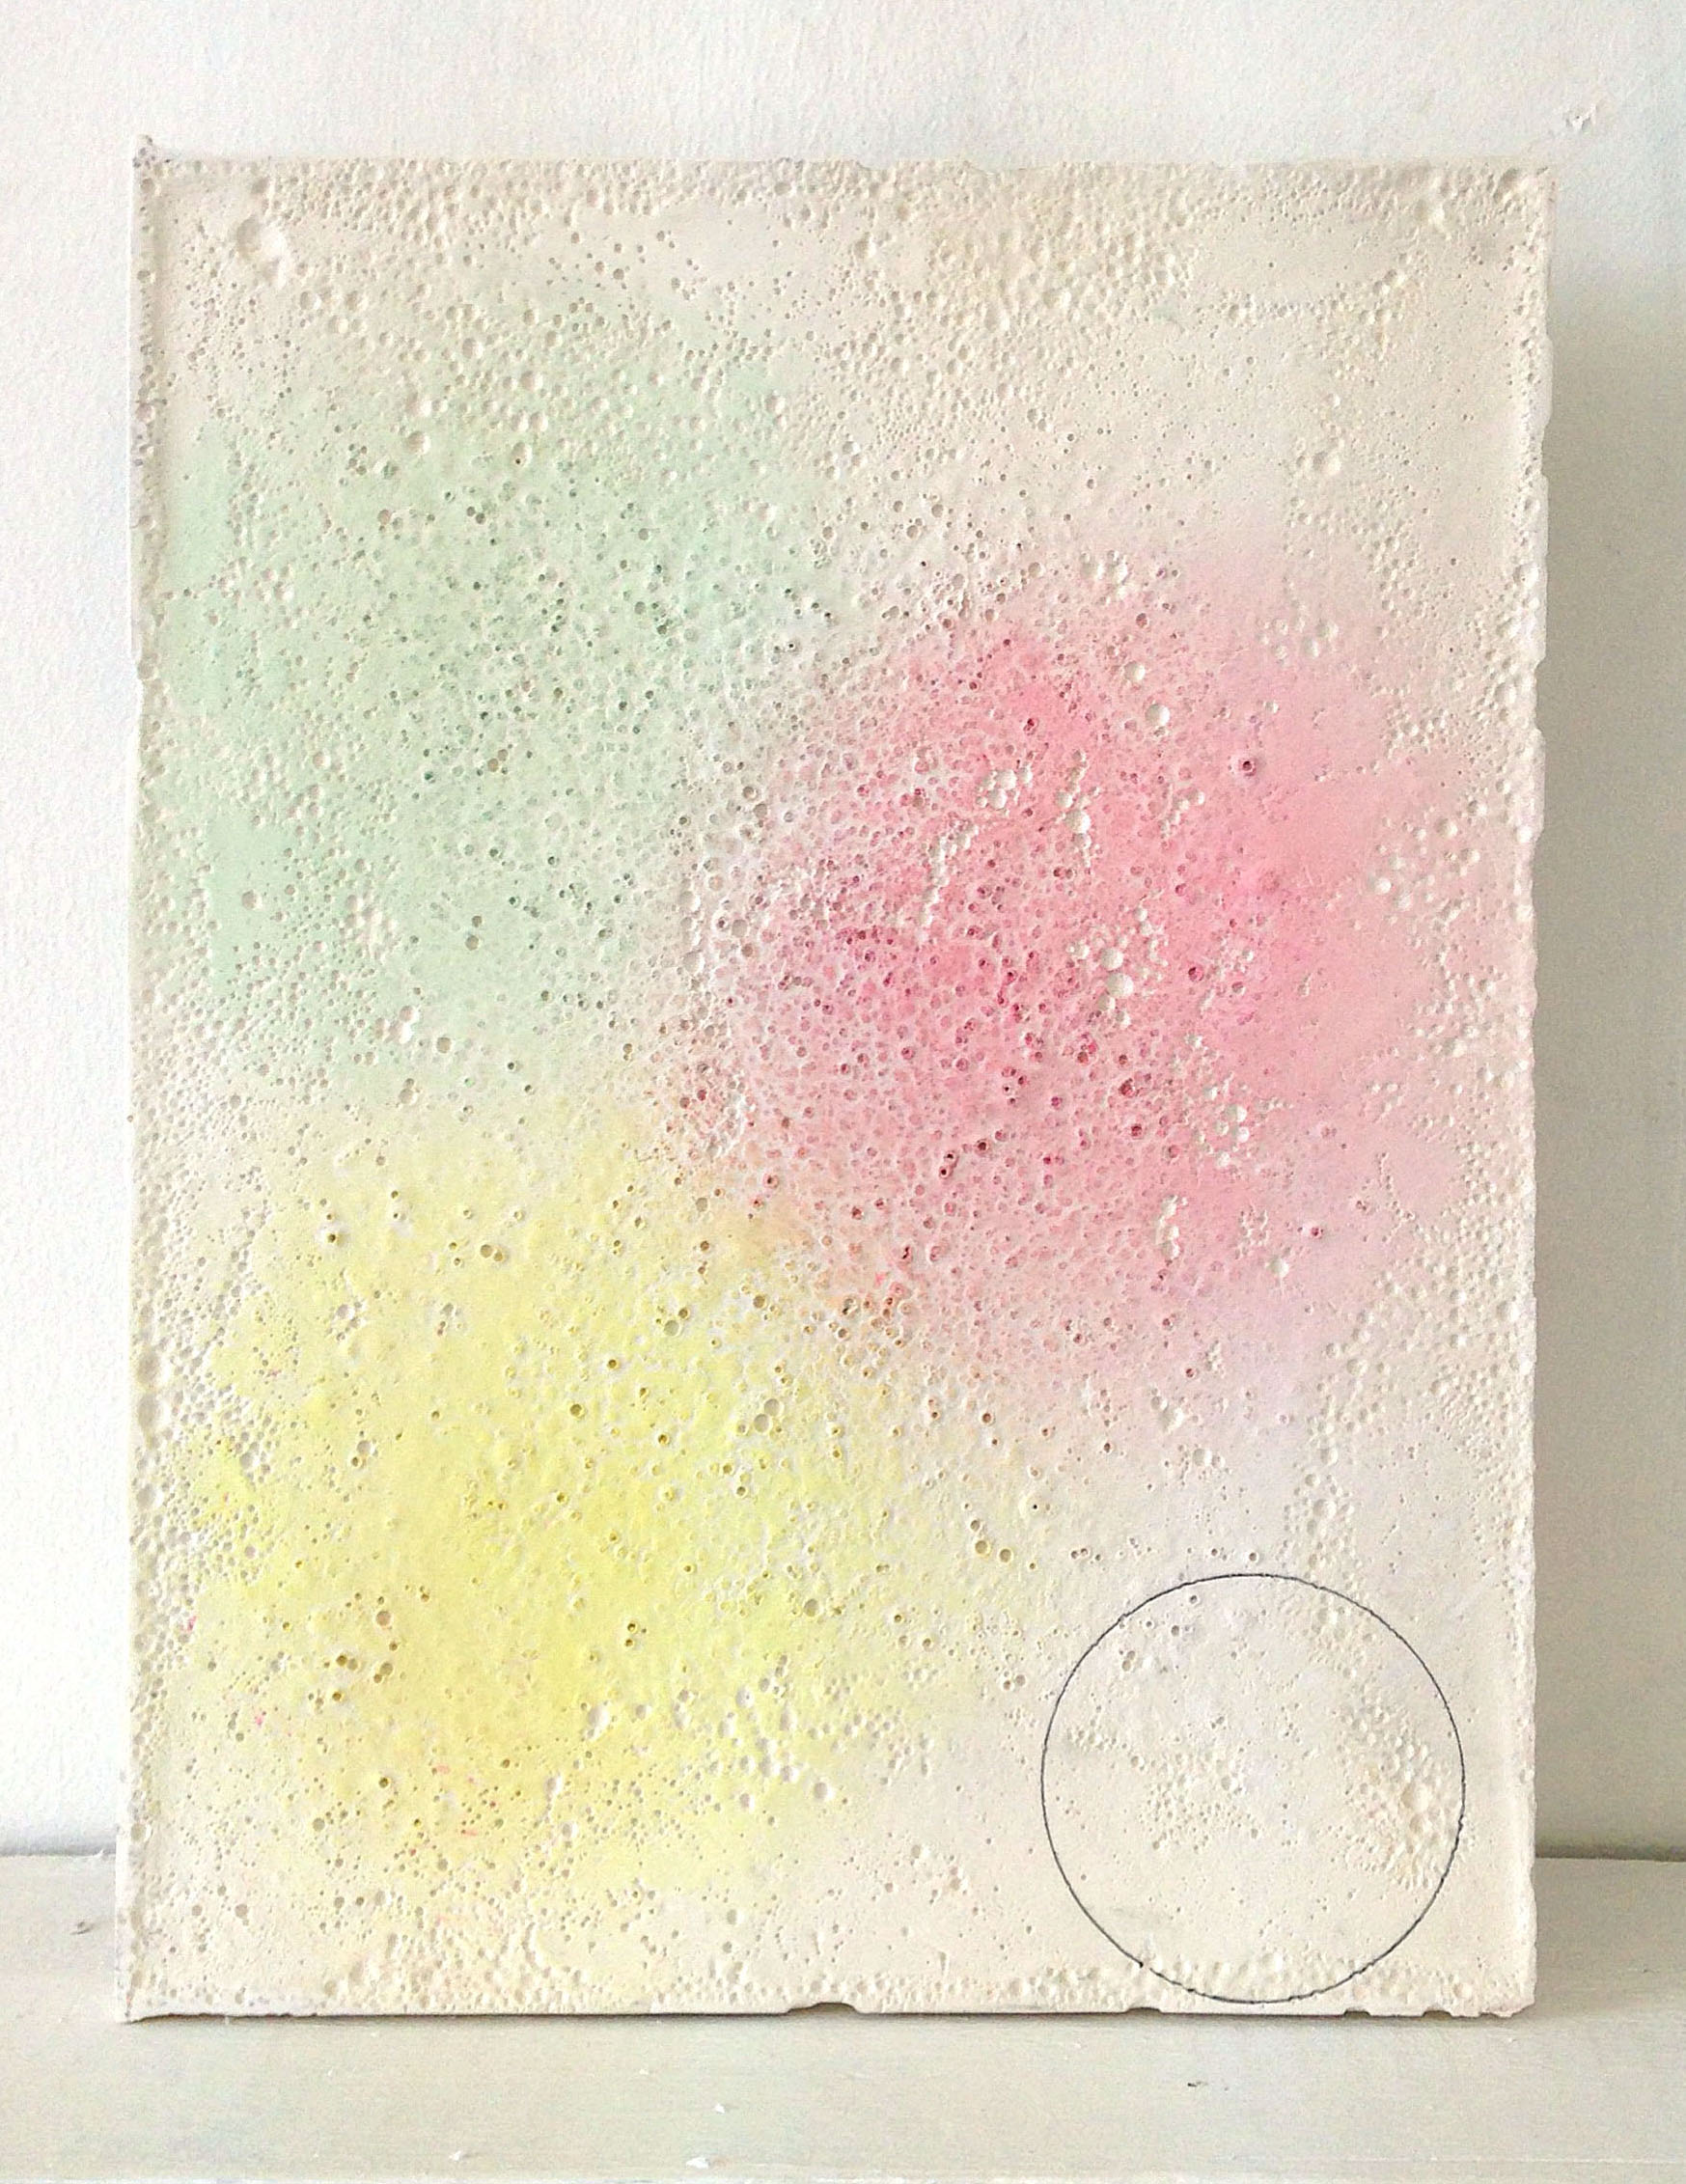 My Heart, 2015, Pencil, pastel and plaster,29.5 x 22.5 cm